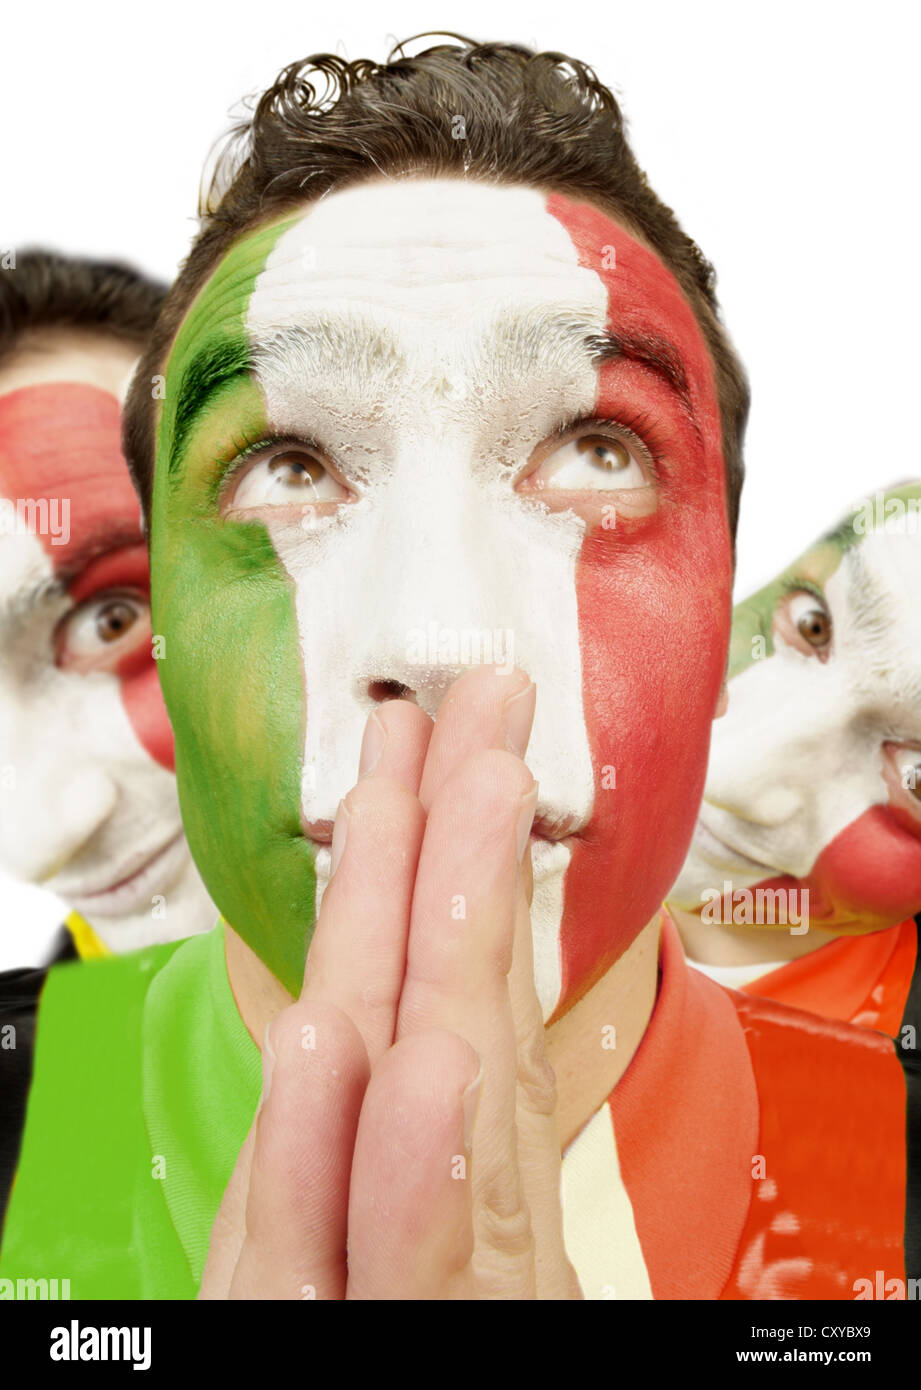 Football fan with his face painted in the national colours of Italy - Stock Image